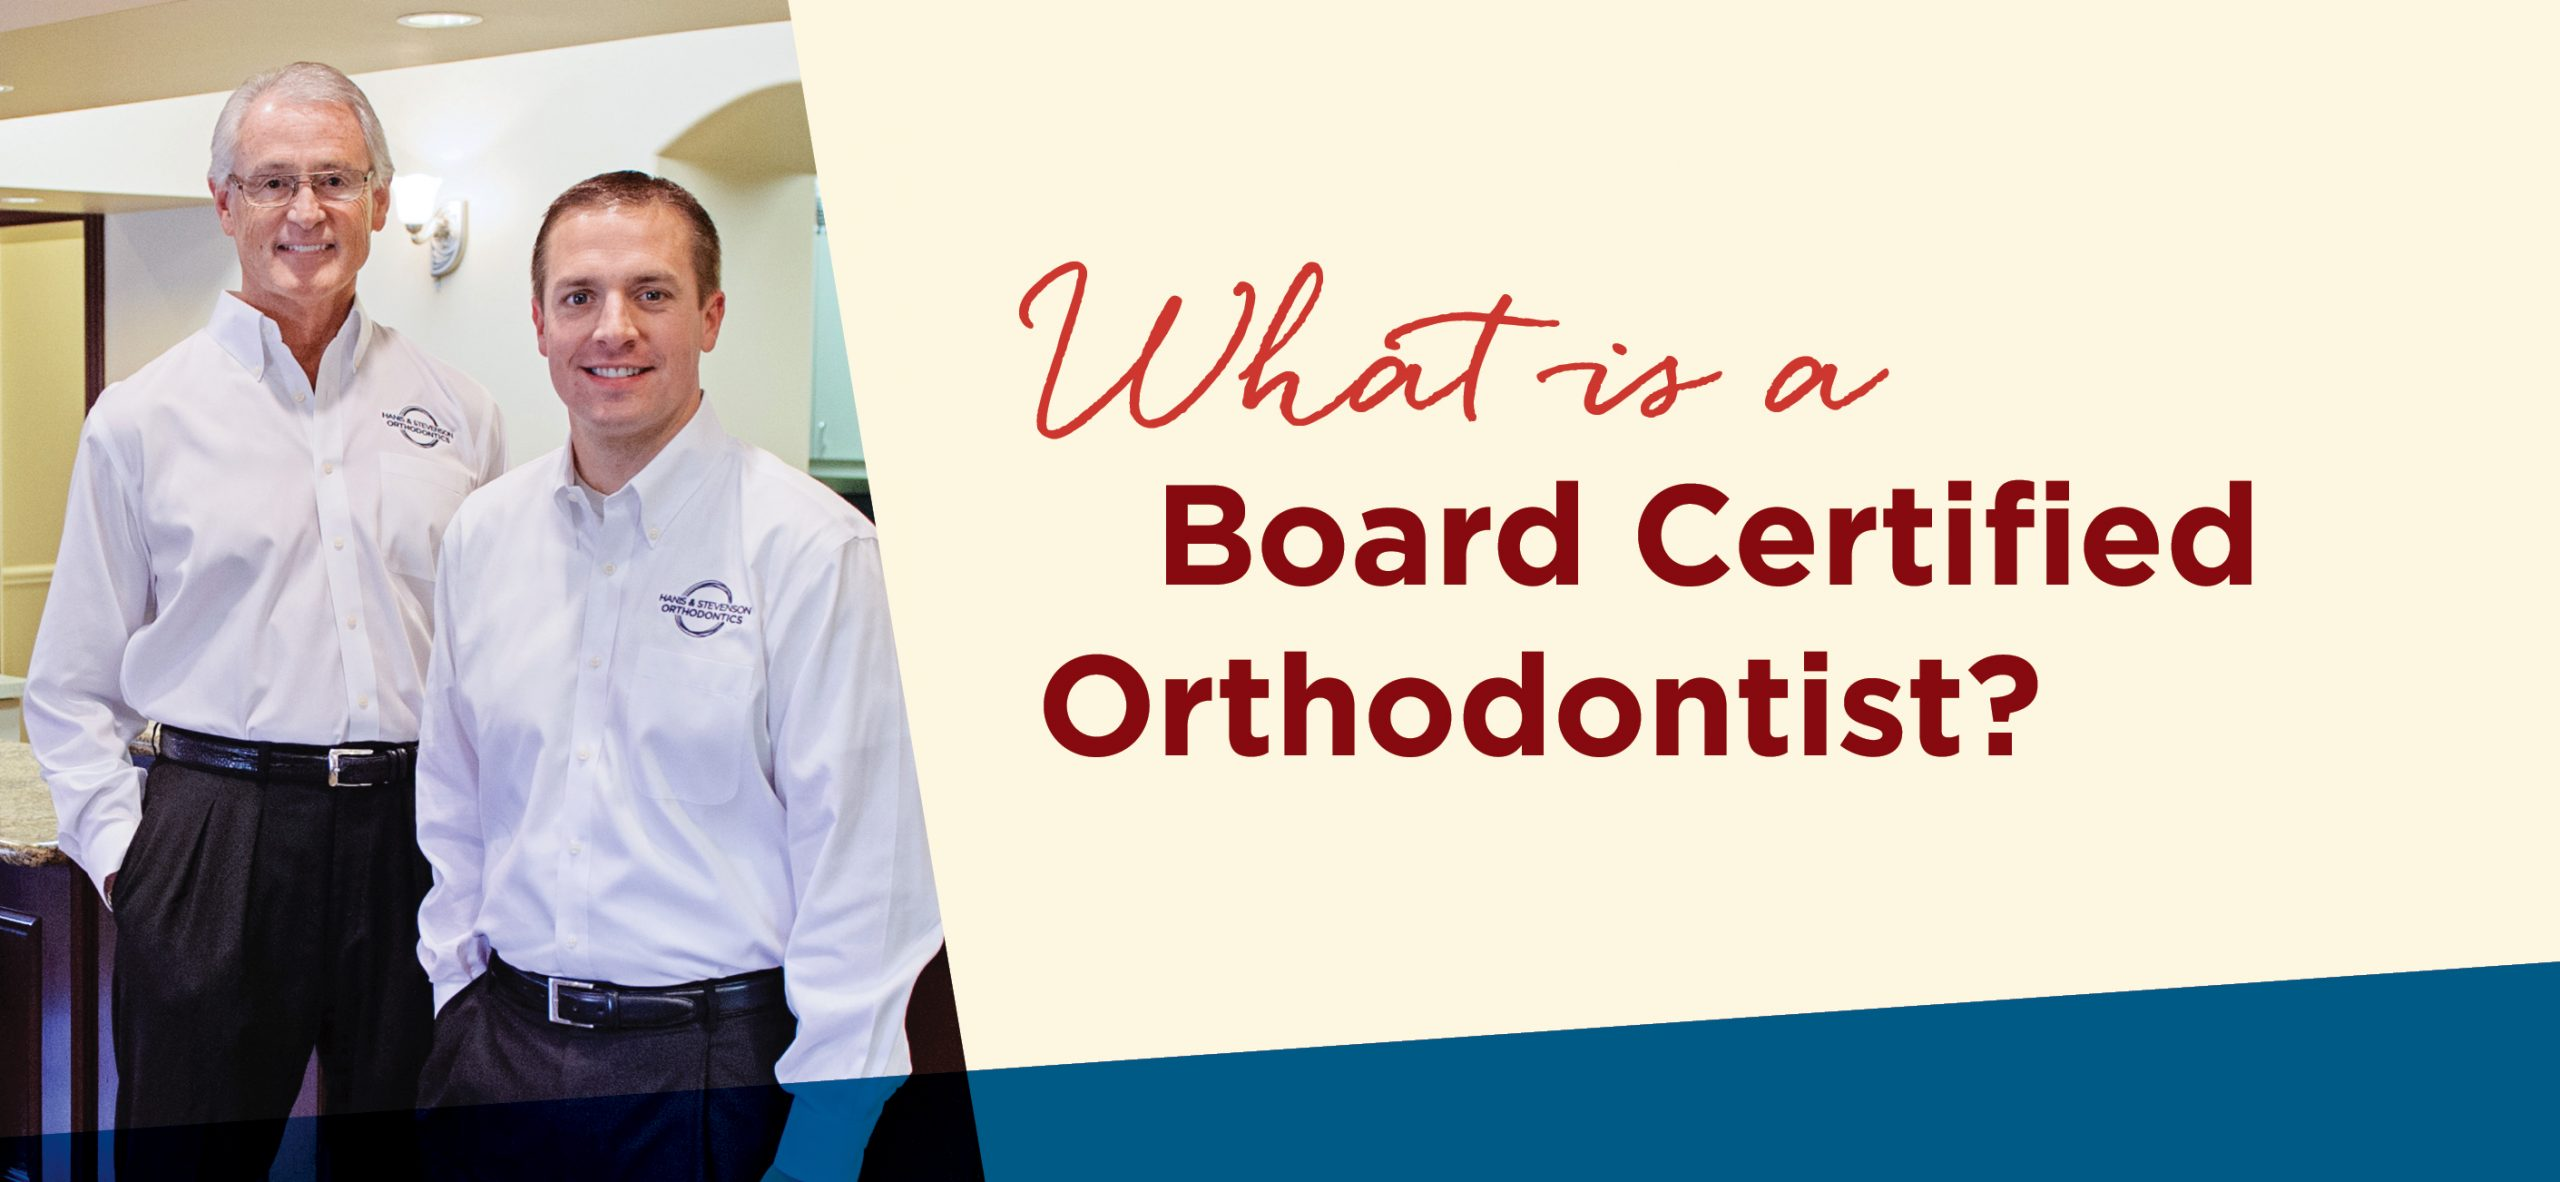 What is a Board Certified Orthodontist?